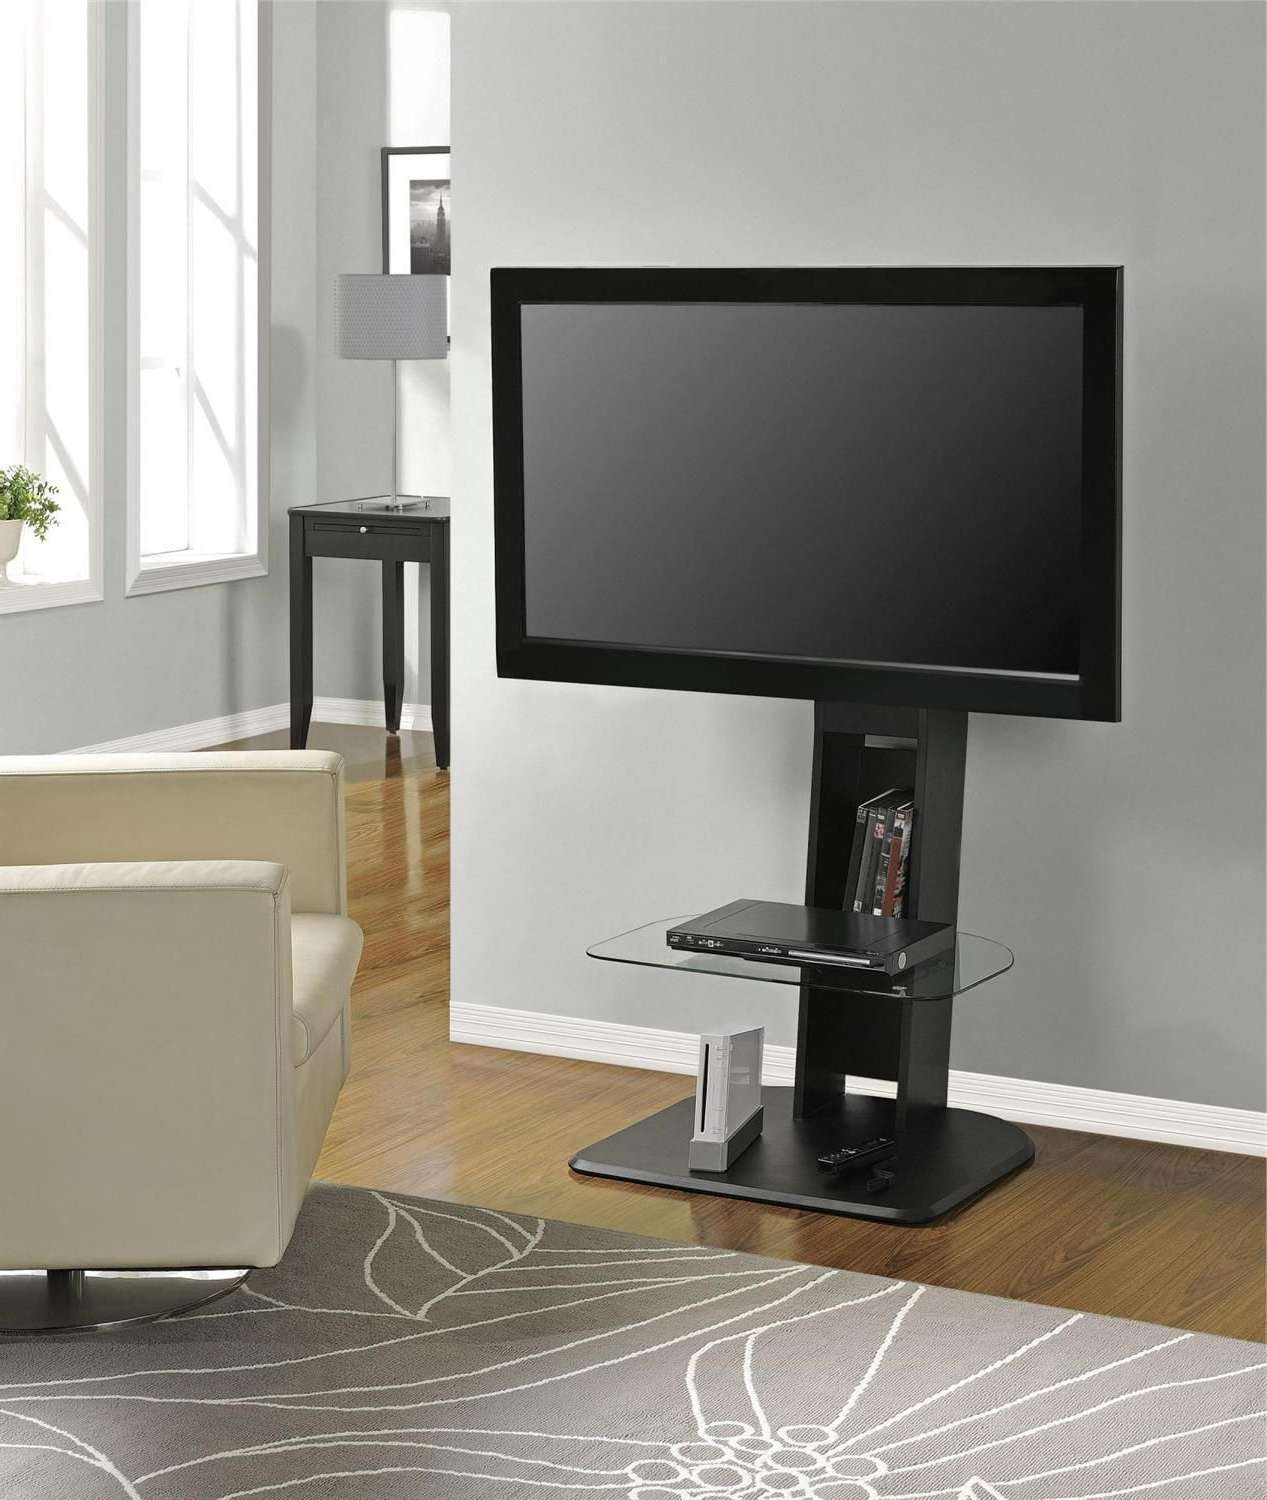 Dorel Home Galaxy Tv Stand With Mount | Walmart Canada Intended For Tv Stands With Mount (View 6 of 15)